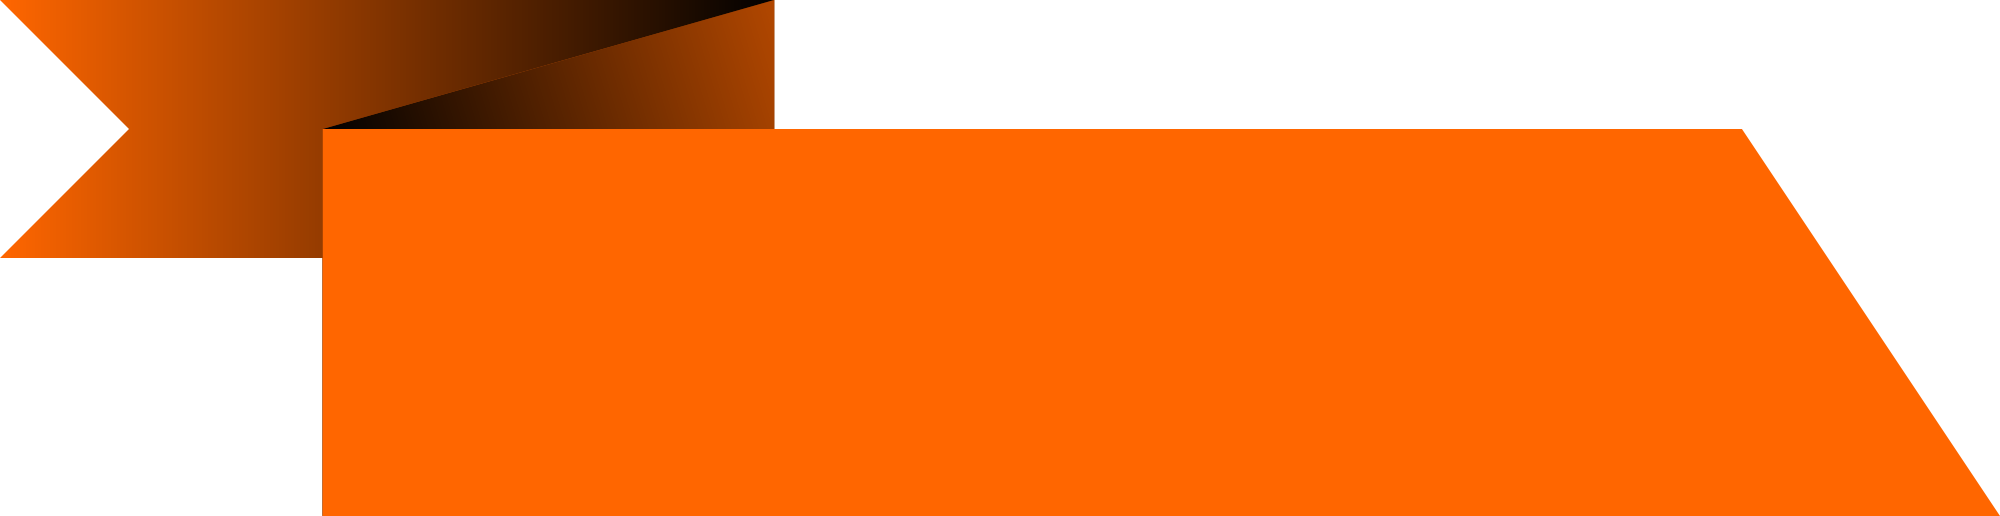 png rectangle